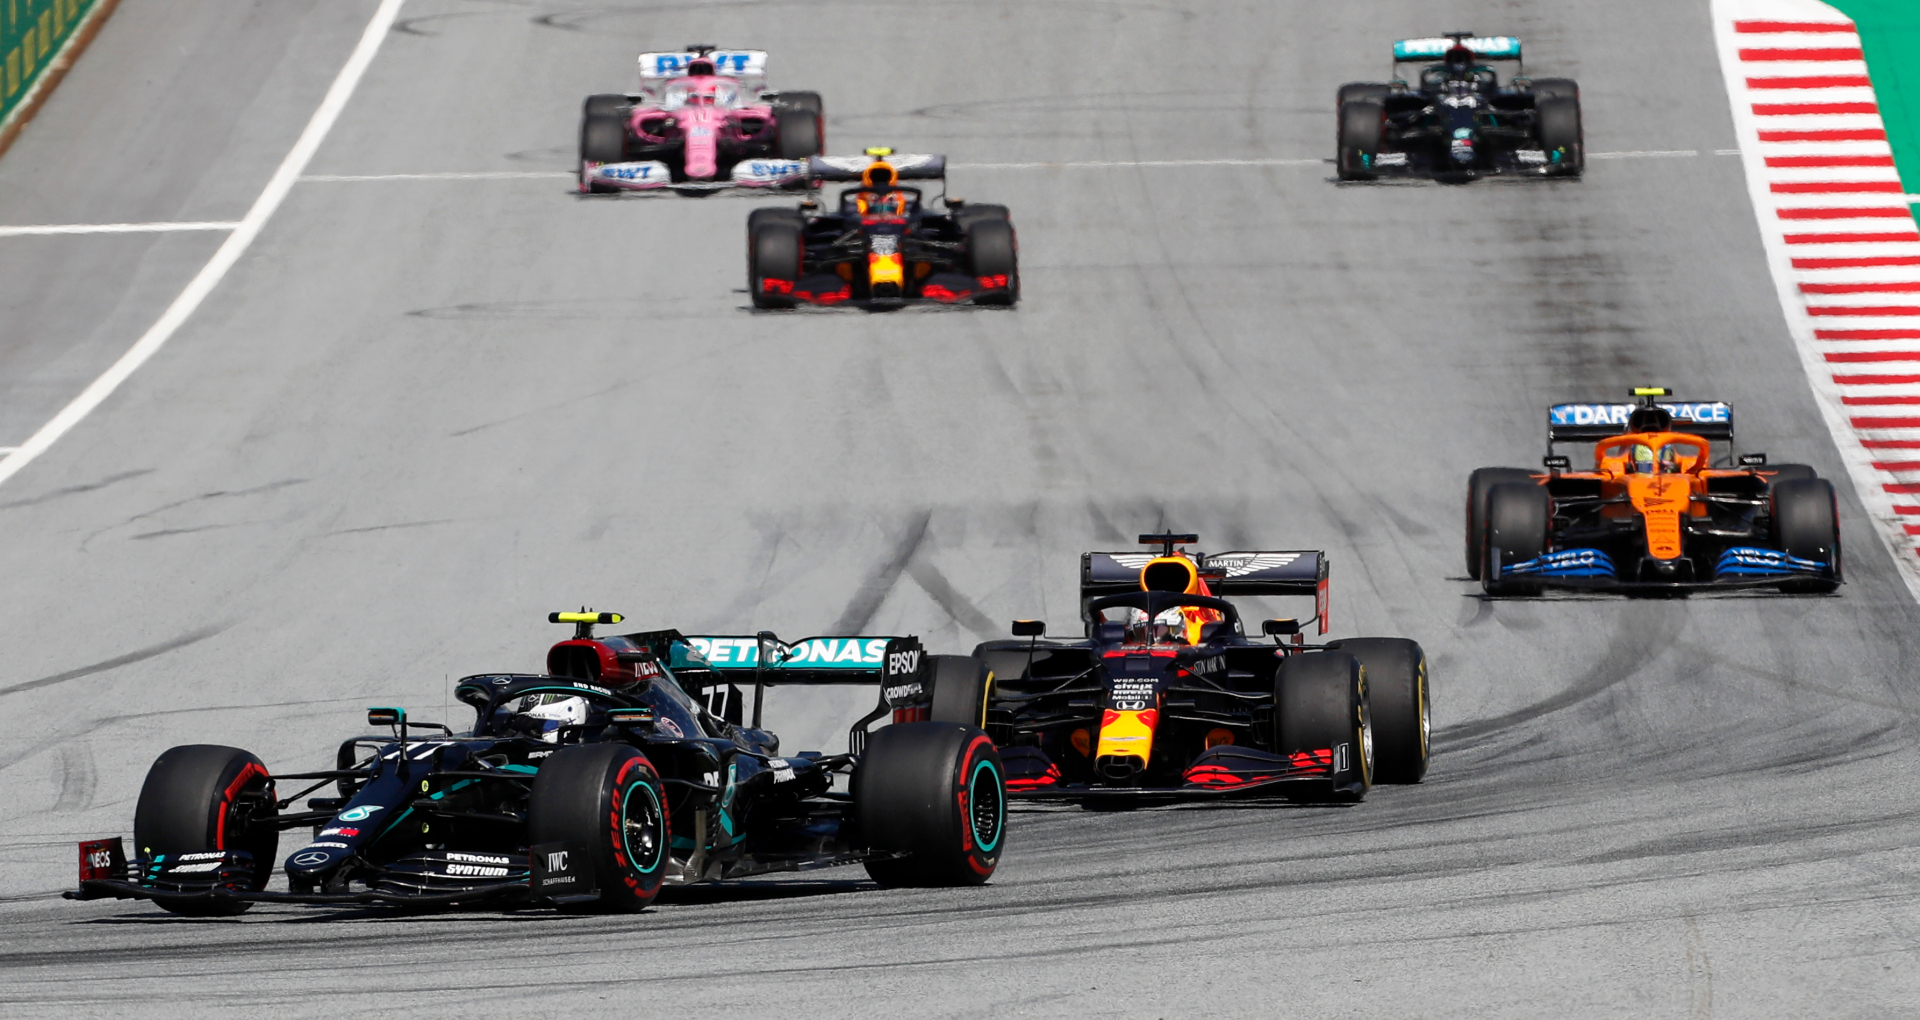 Verstappen frustrated at failure to finish, criticised for not taking a knee - DutchNews.nl